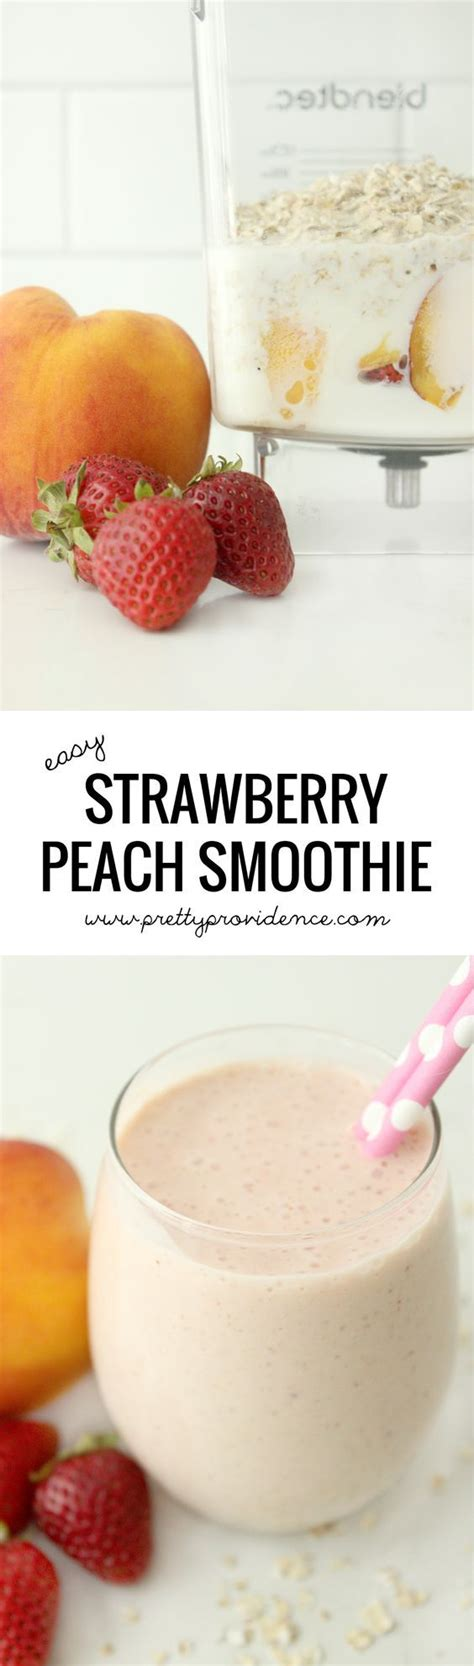 25 best ideas about strawberry peach smoothie on